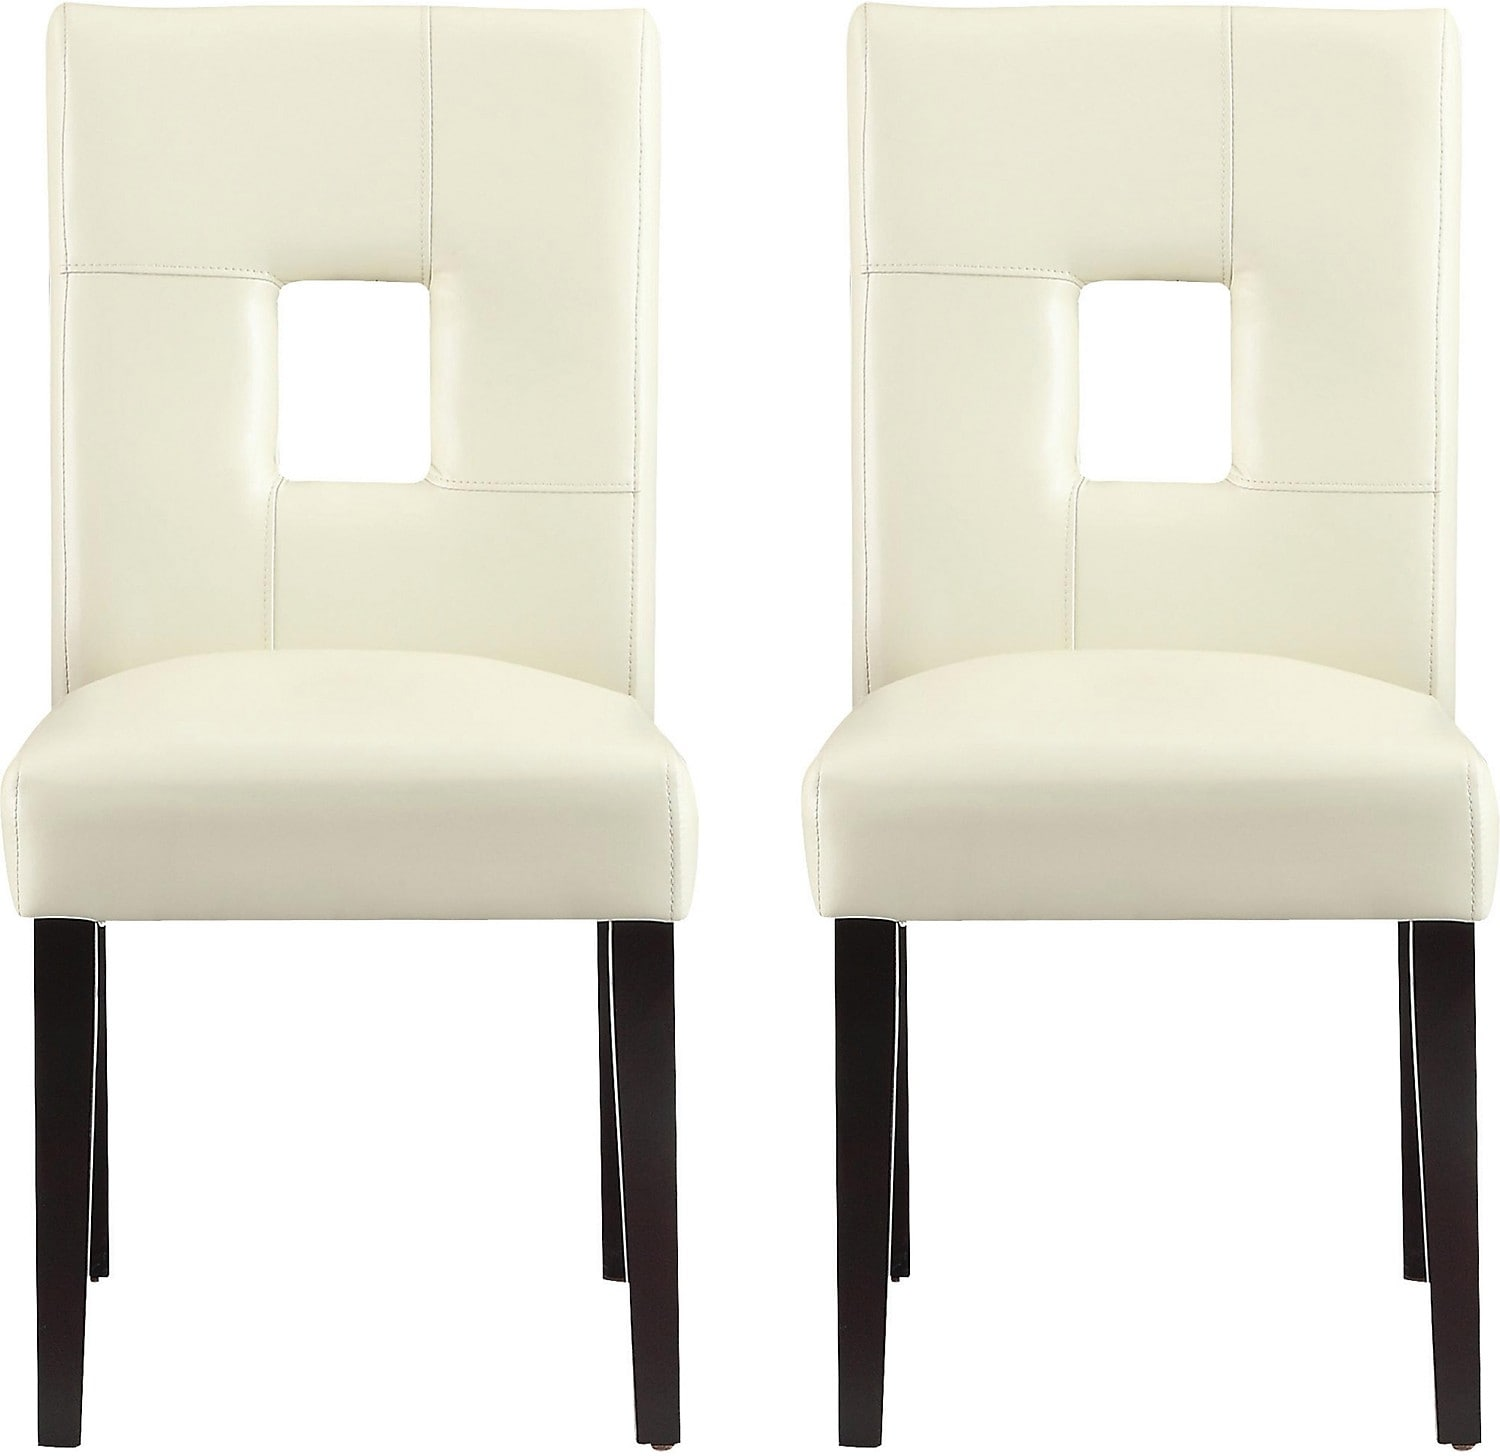 McKenna 2-Piece Dining Chairs - White